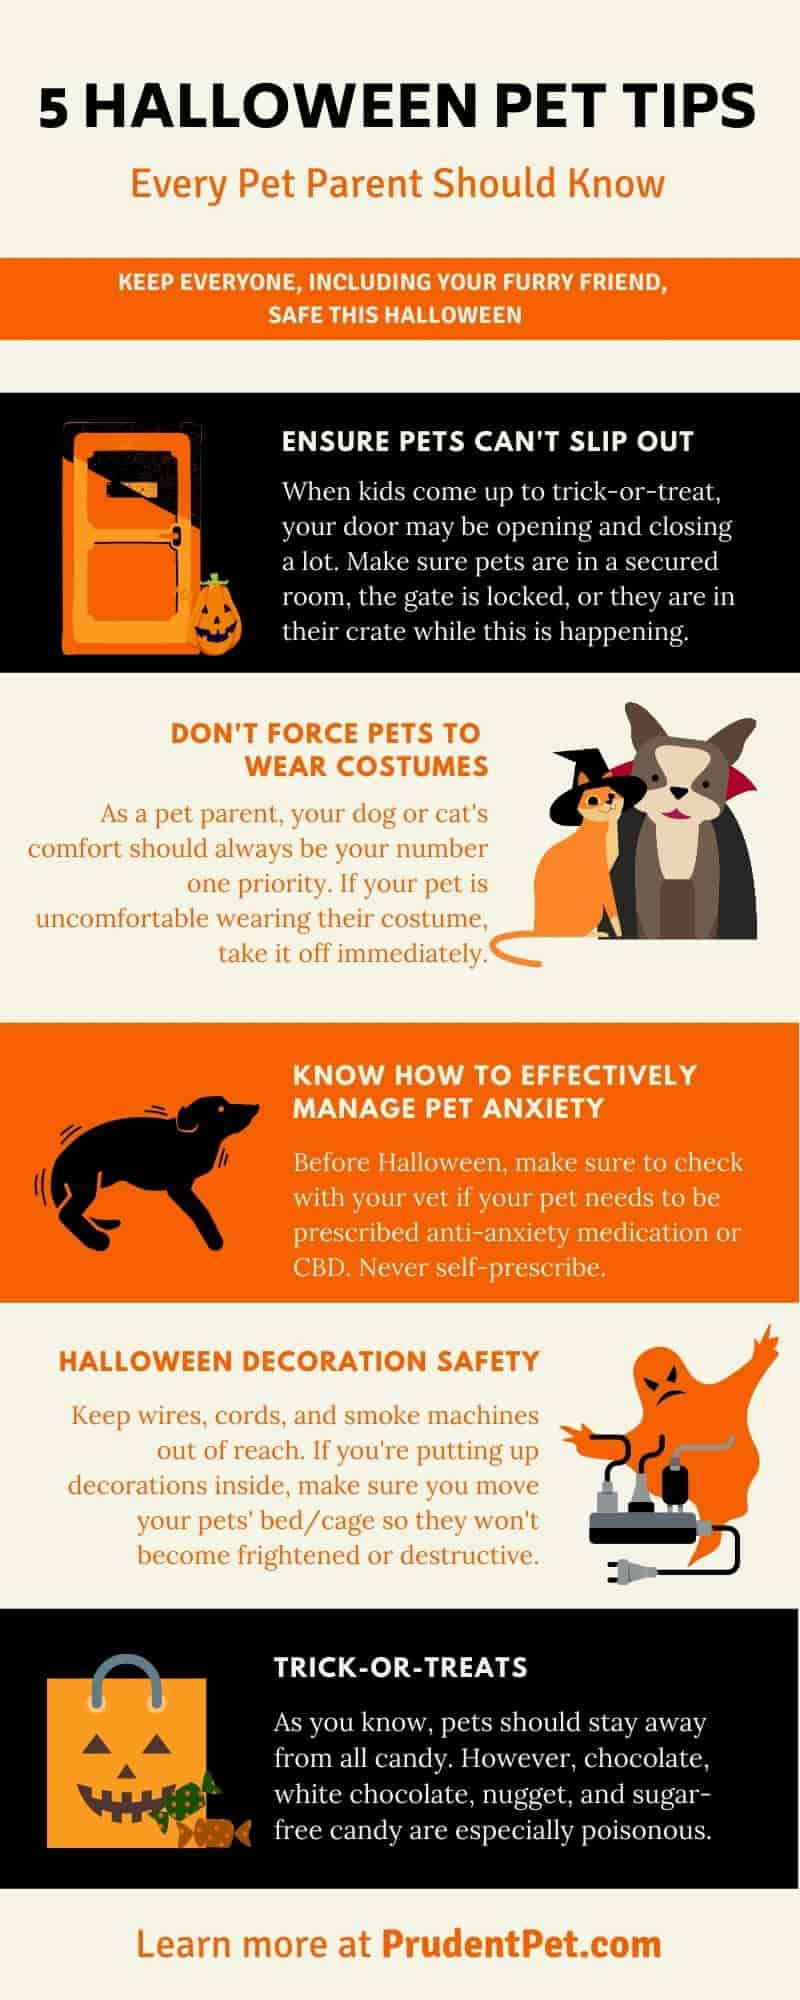 Prudent Pet infographic for Halloween tips